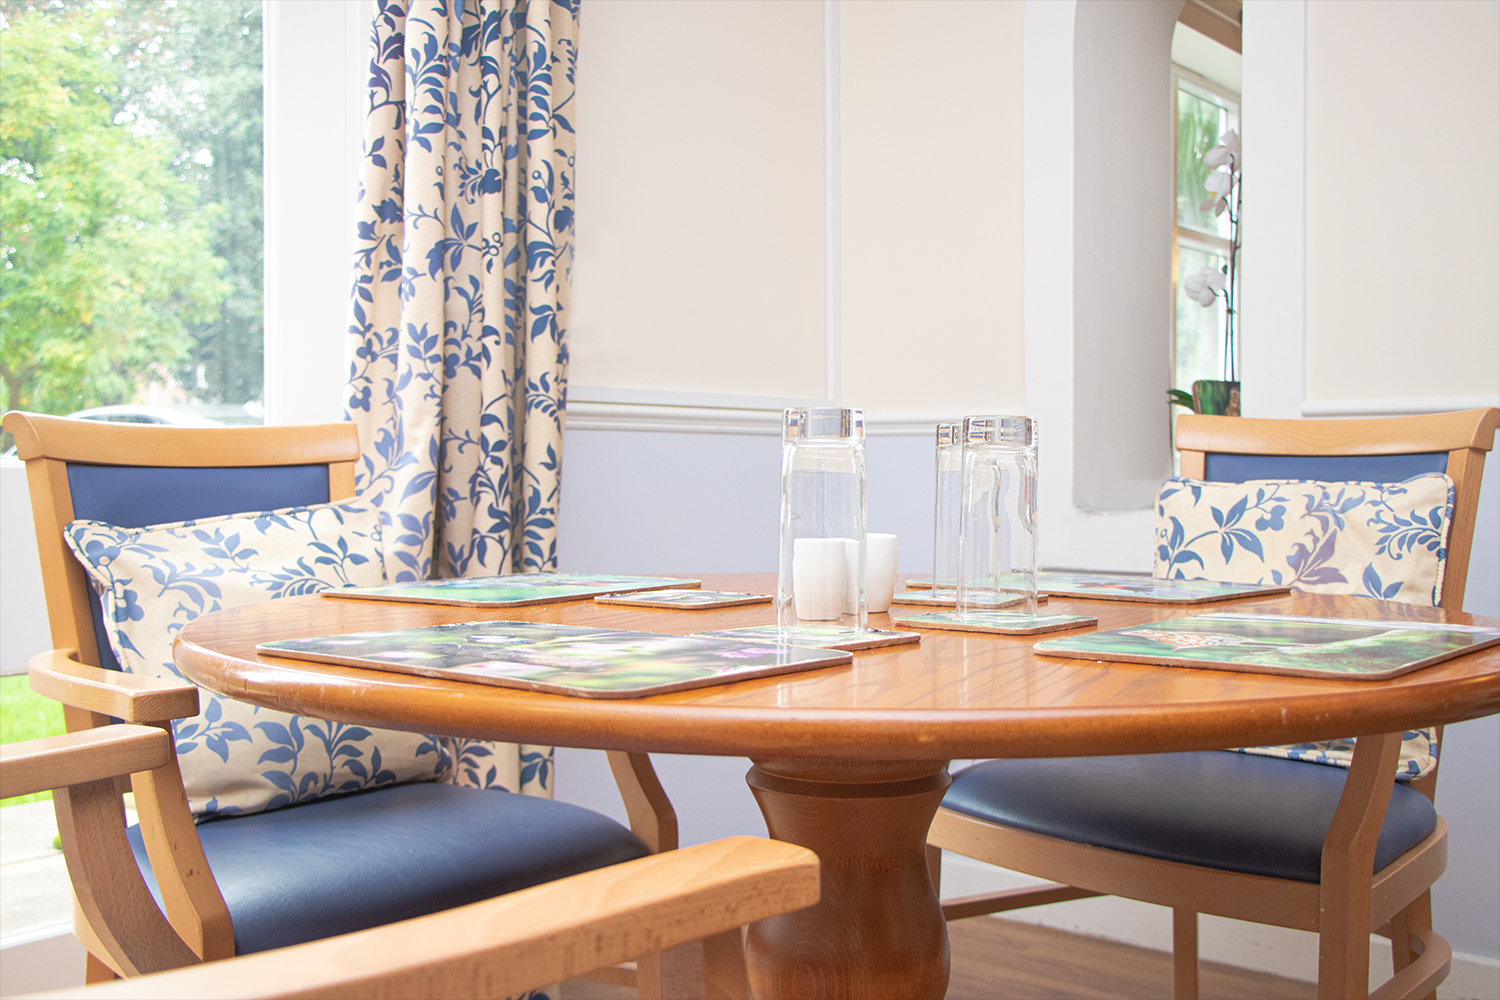 Moor House care home dining